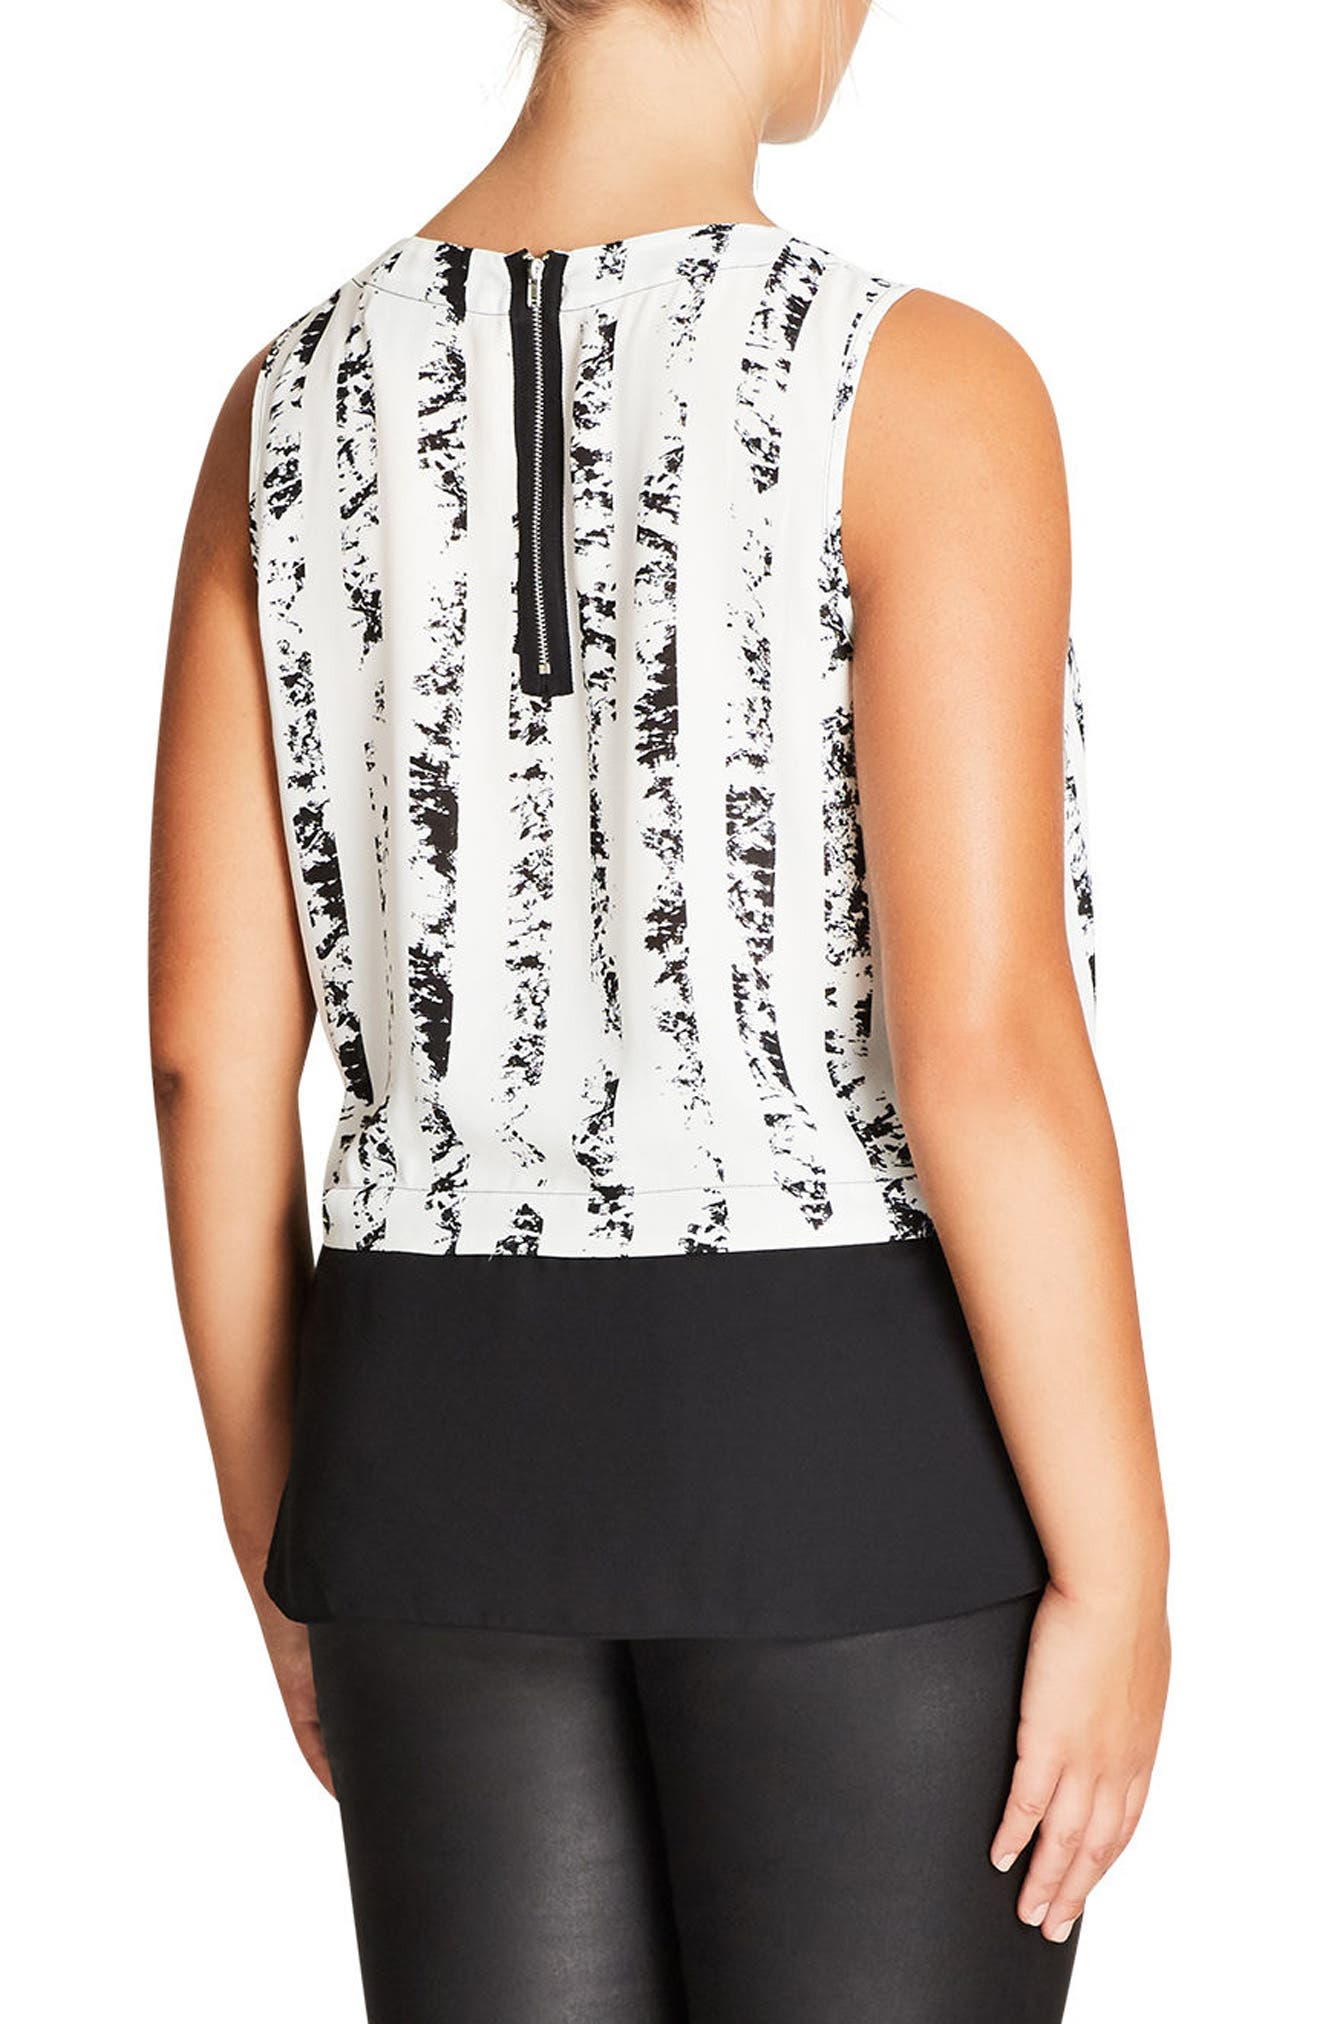 Alternate Image 2  - City Chic Print Overlay Top (Plus Size)